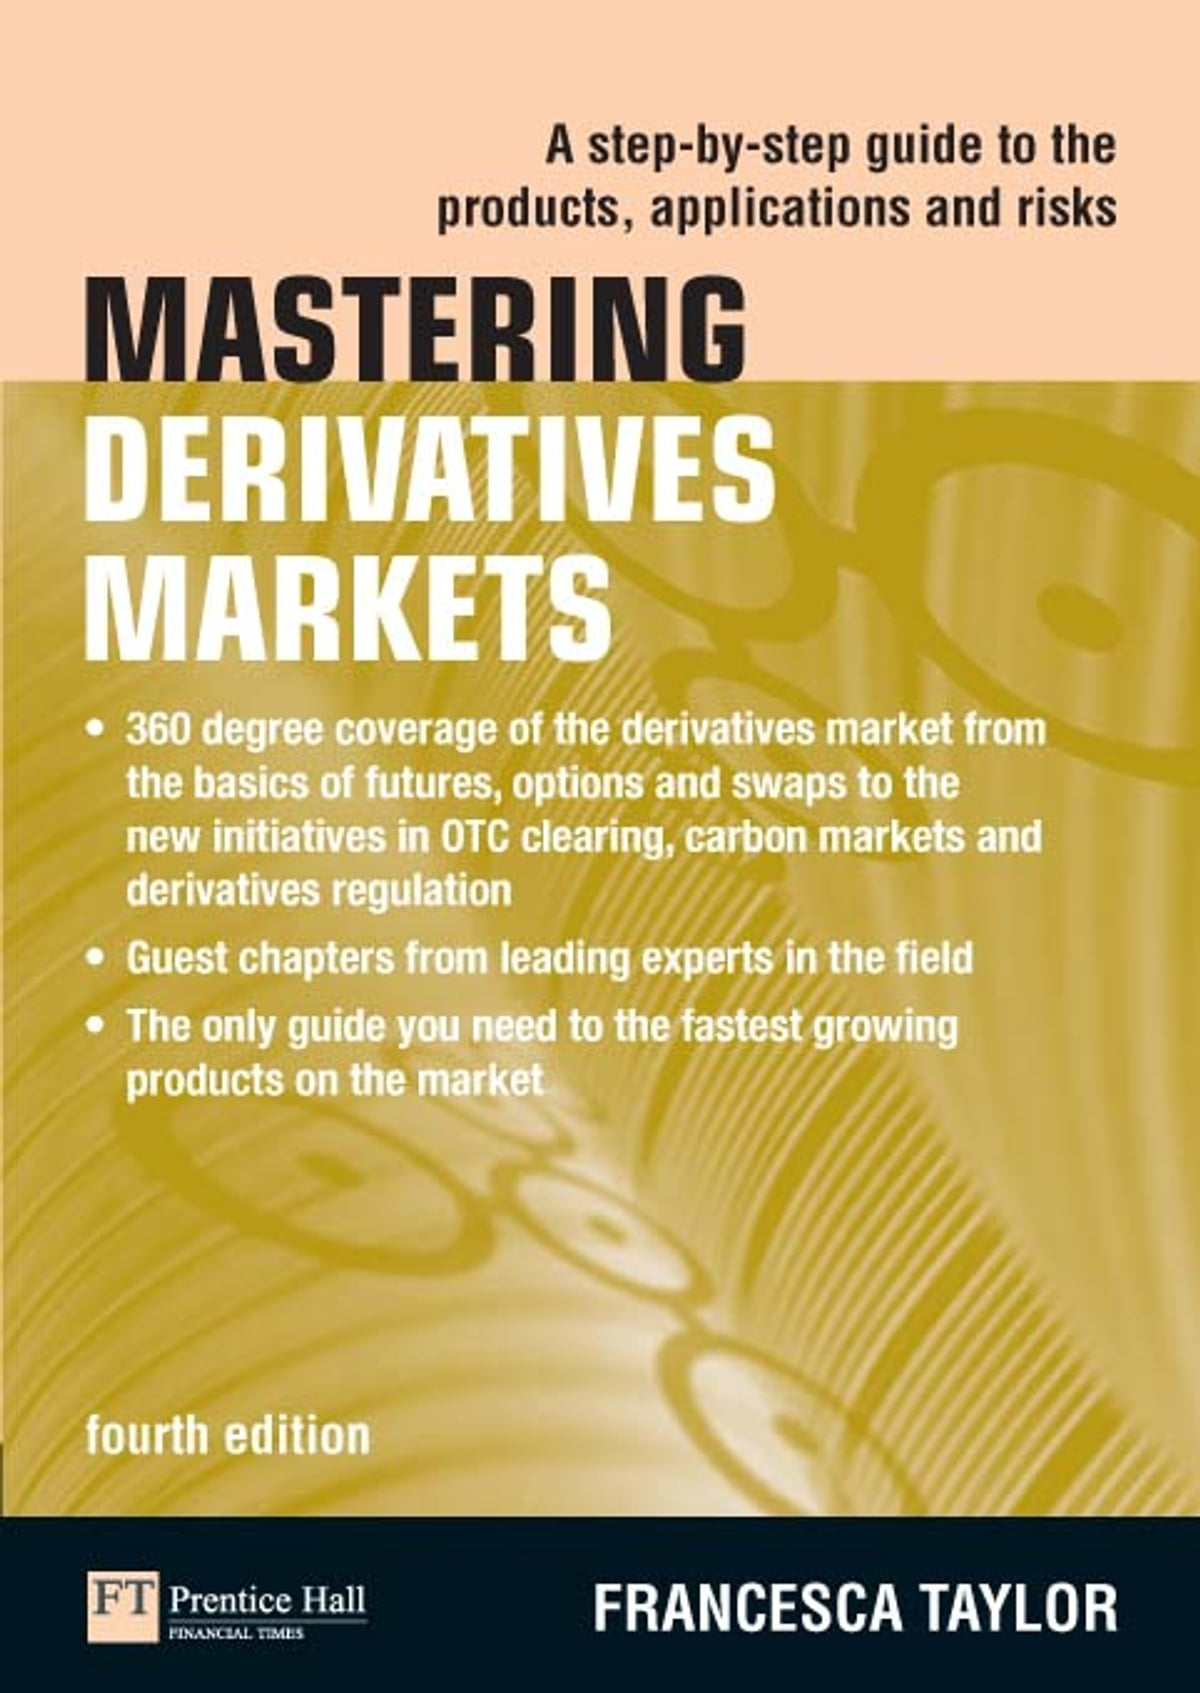 Mastering Derivatives Markets Ebook By Francesca Taylor 9780273759997 Kobo